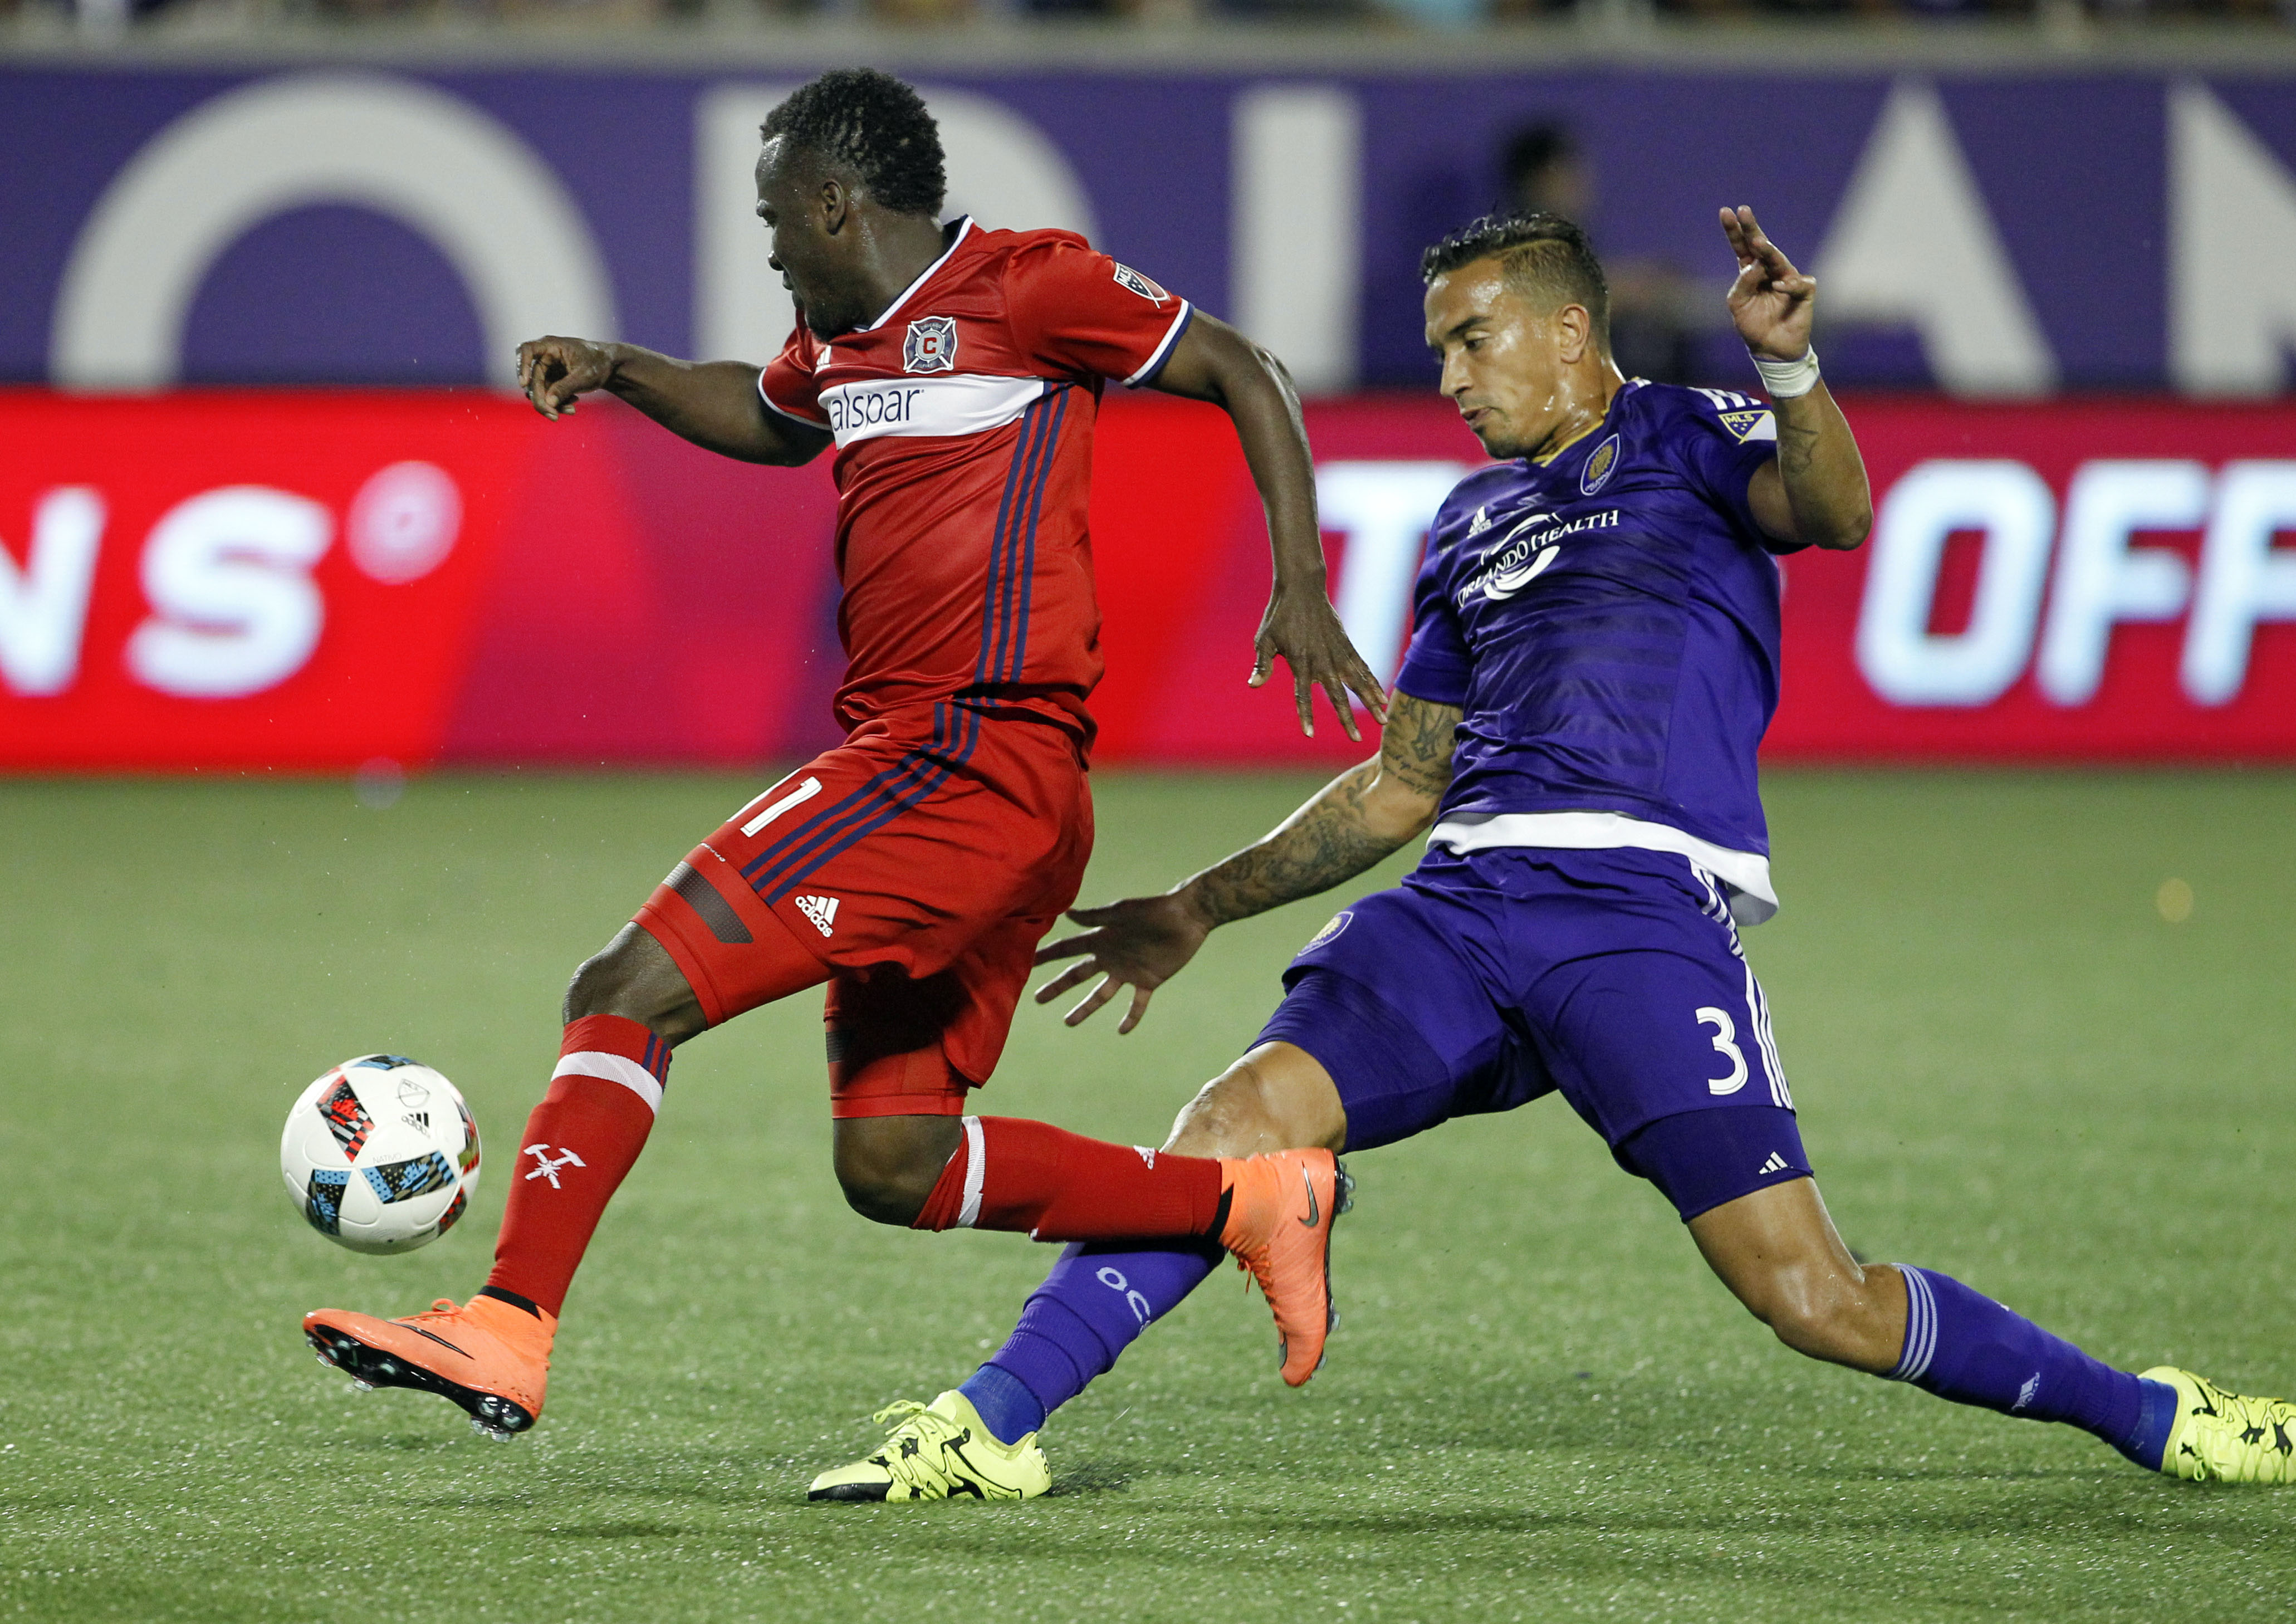 David Accam (left) beats defender Seb Hines to a loose ball before scoring in an early season game against Orlando City.